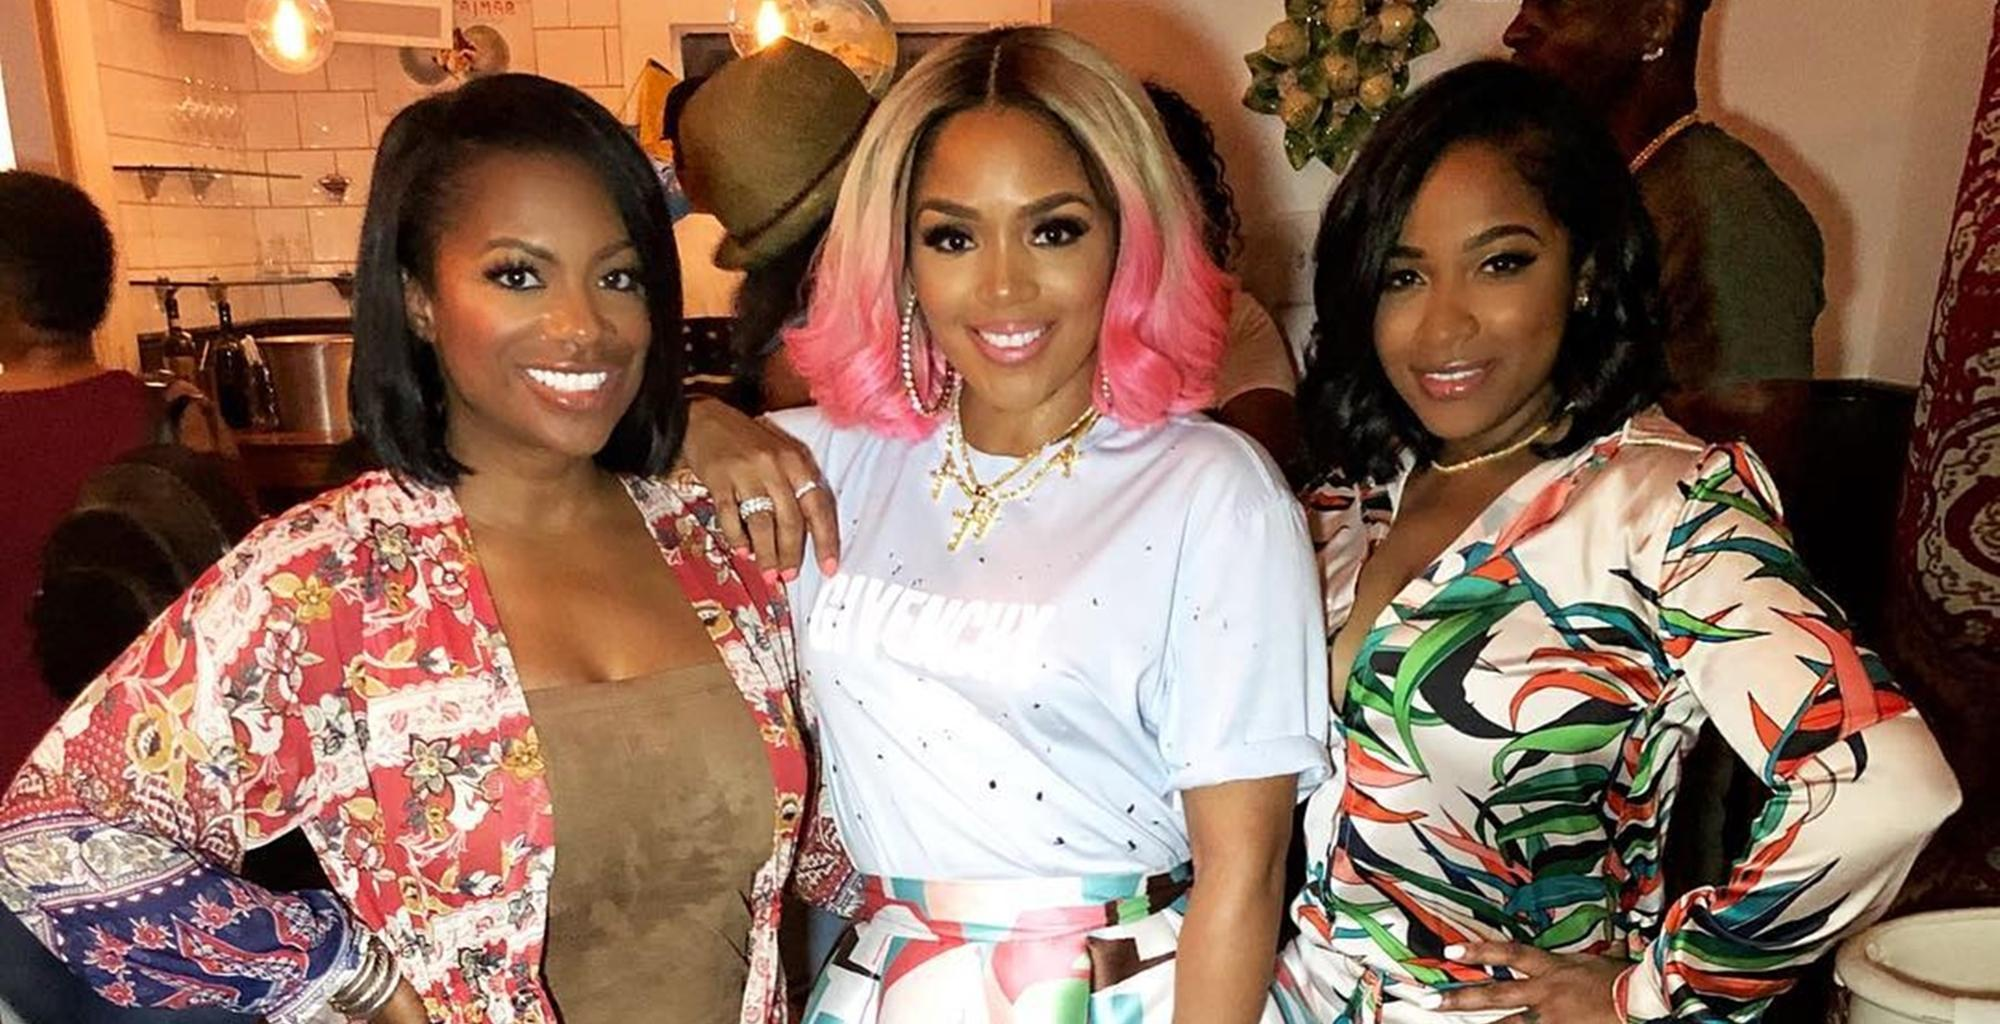 Toya Wright, Rasheeda Frost And Kandi Burruss' Fans Praise Them After They Give Back For Christmas